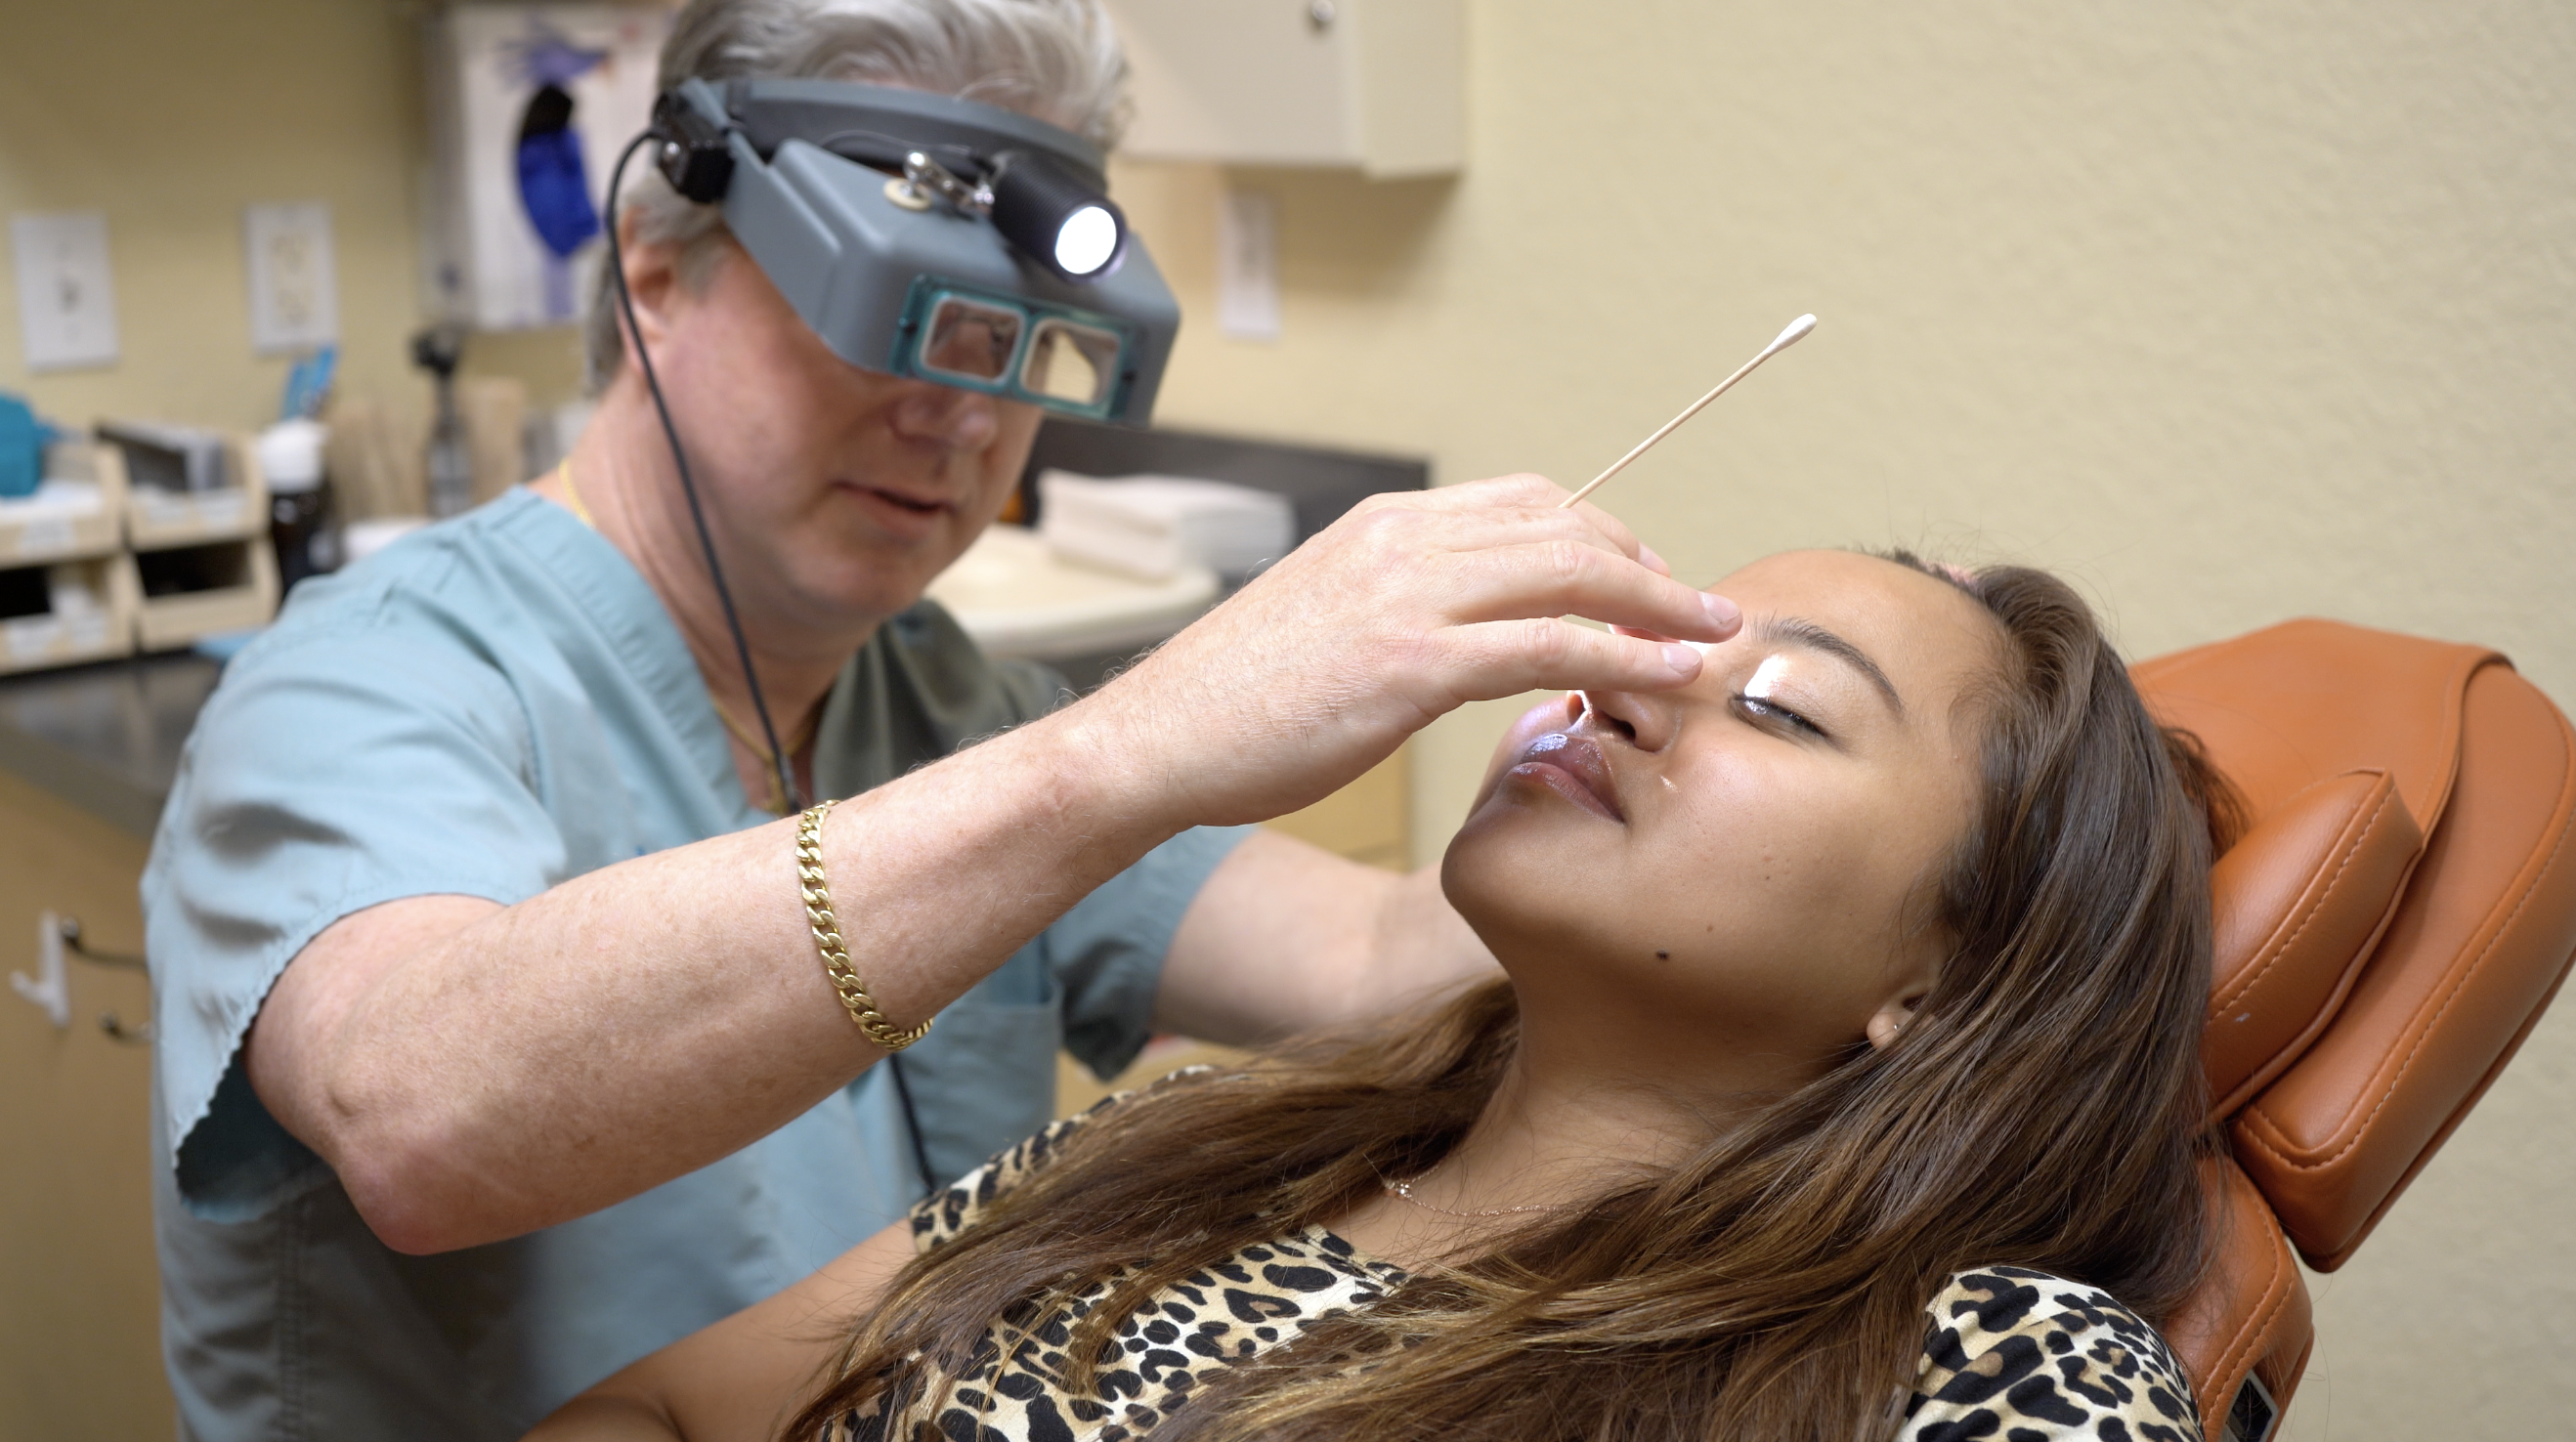 Patient Kirsten T. is examined for cleft lip or palate reconstruction at Primera Plastic Surgery in Lake Mary, Florida